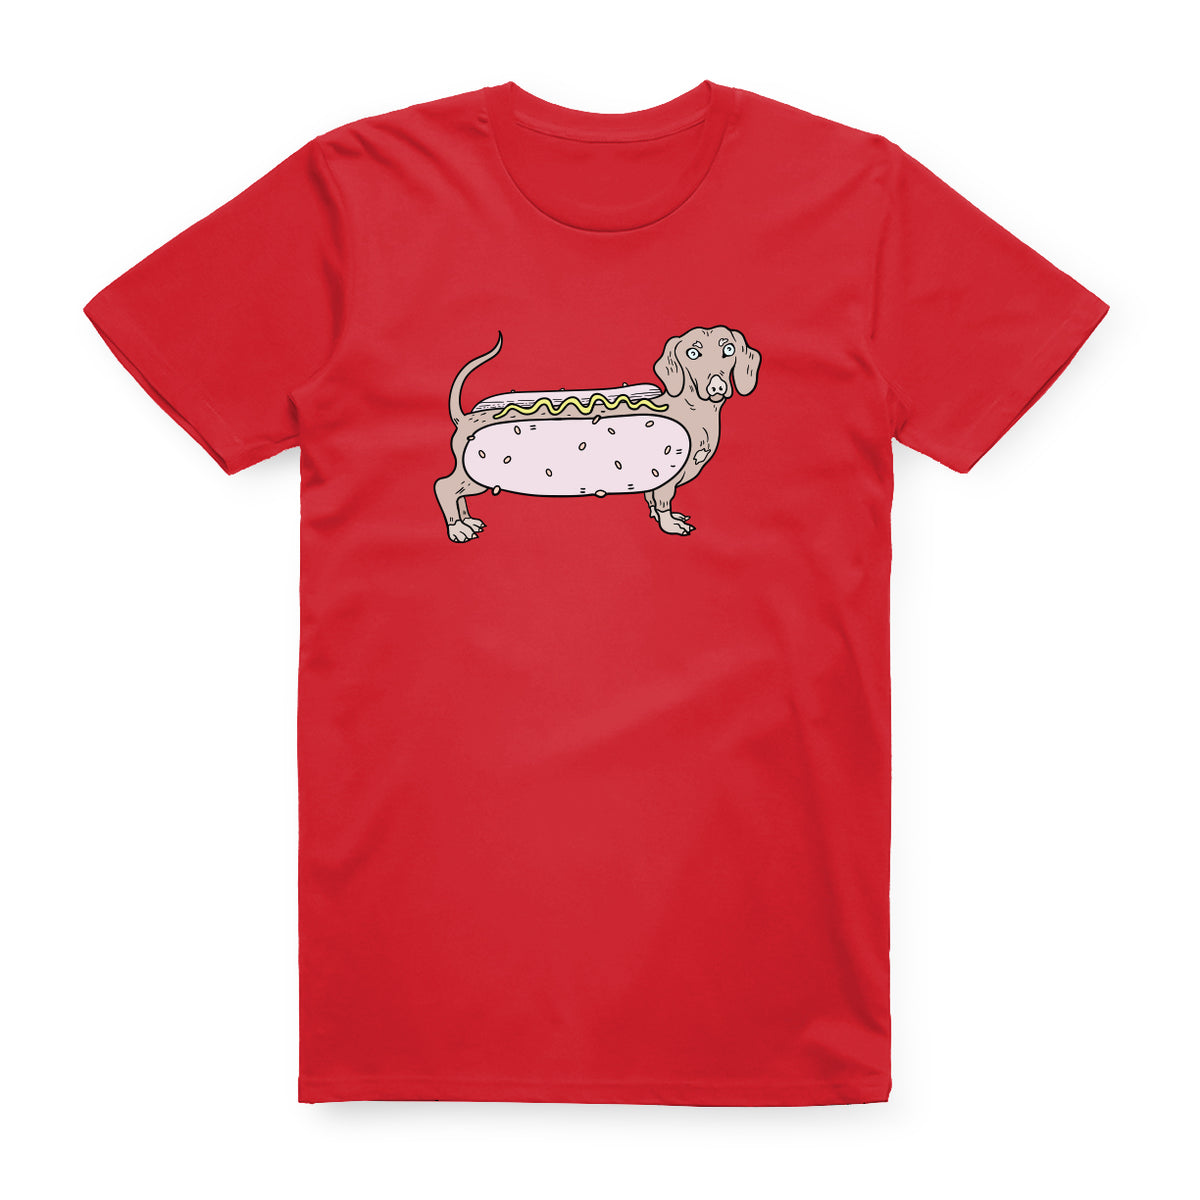 Hot Doggo Tee